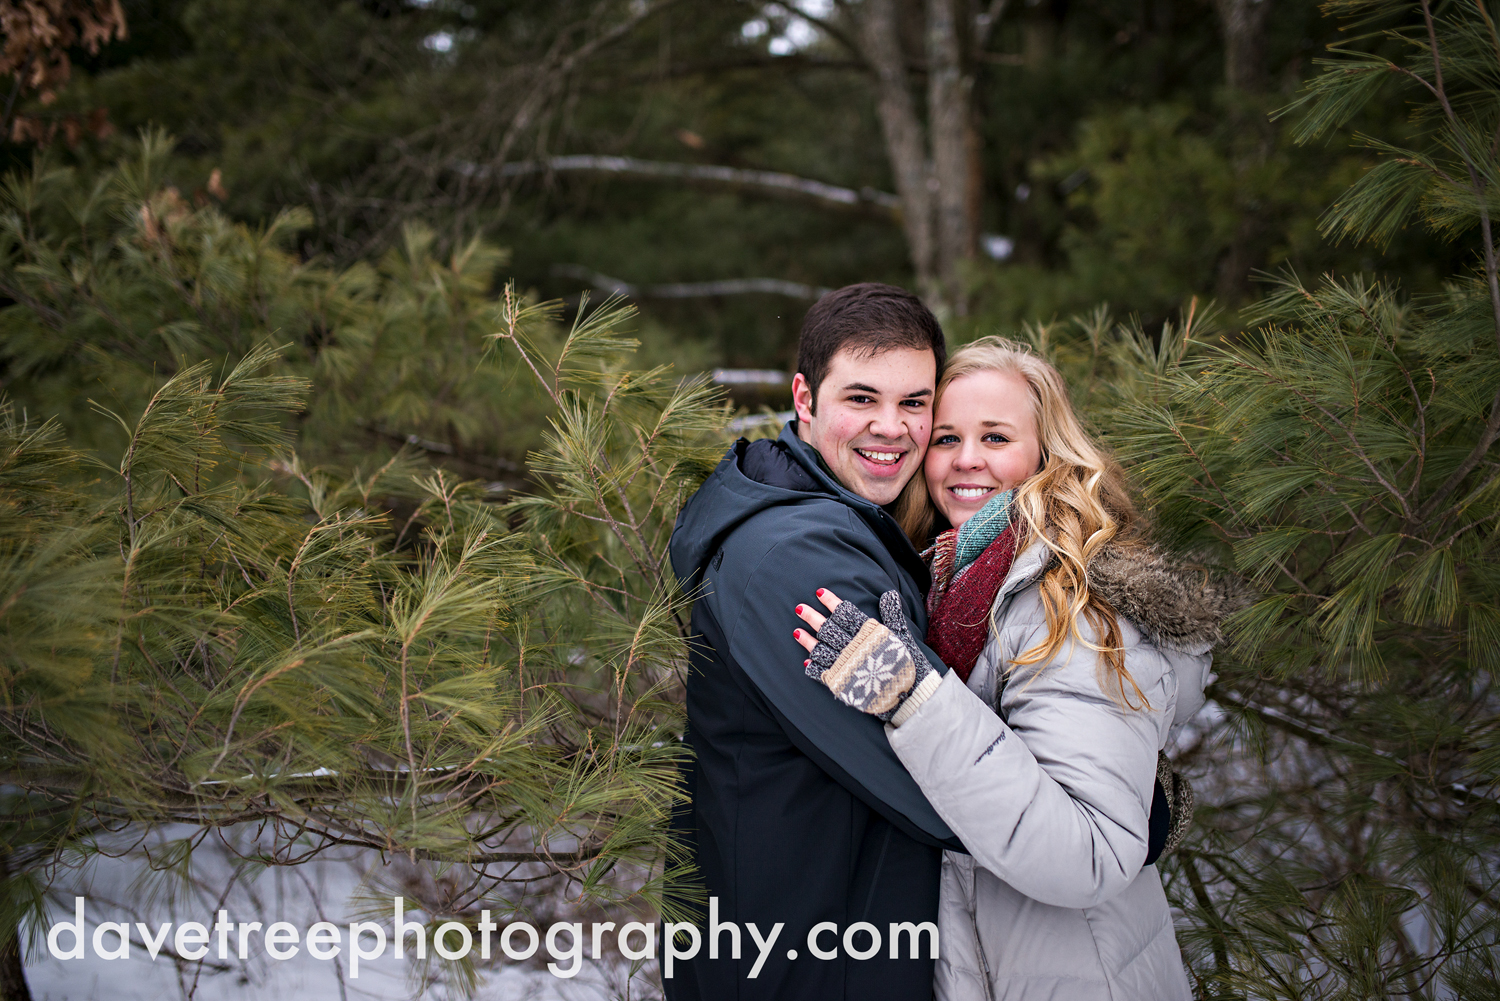 kalamazoo_engagement_photographer_305.jpg